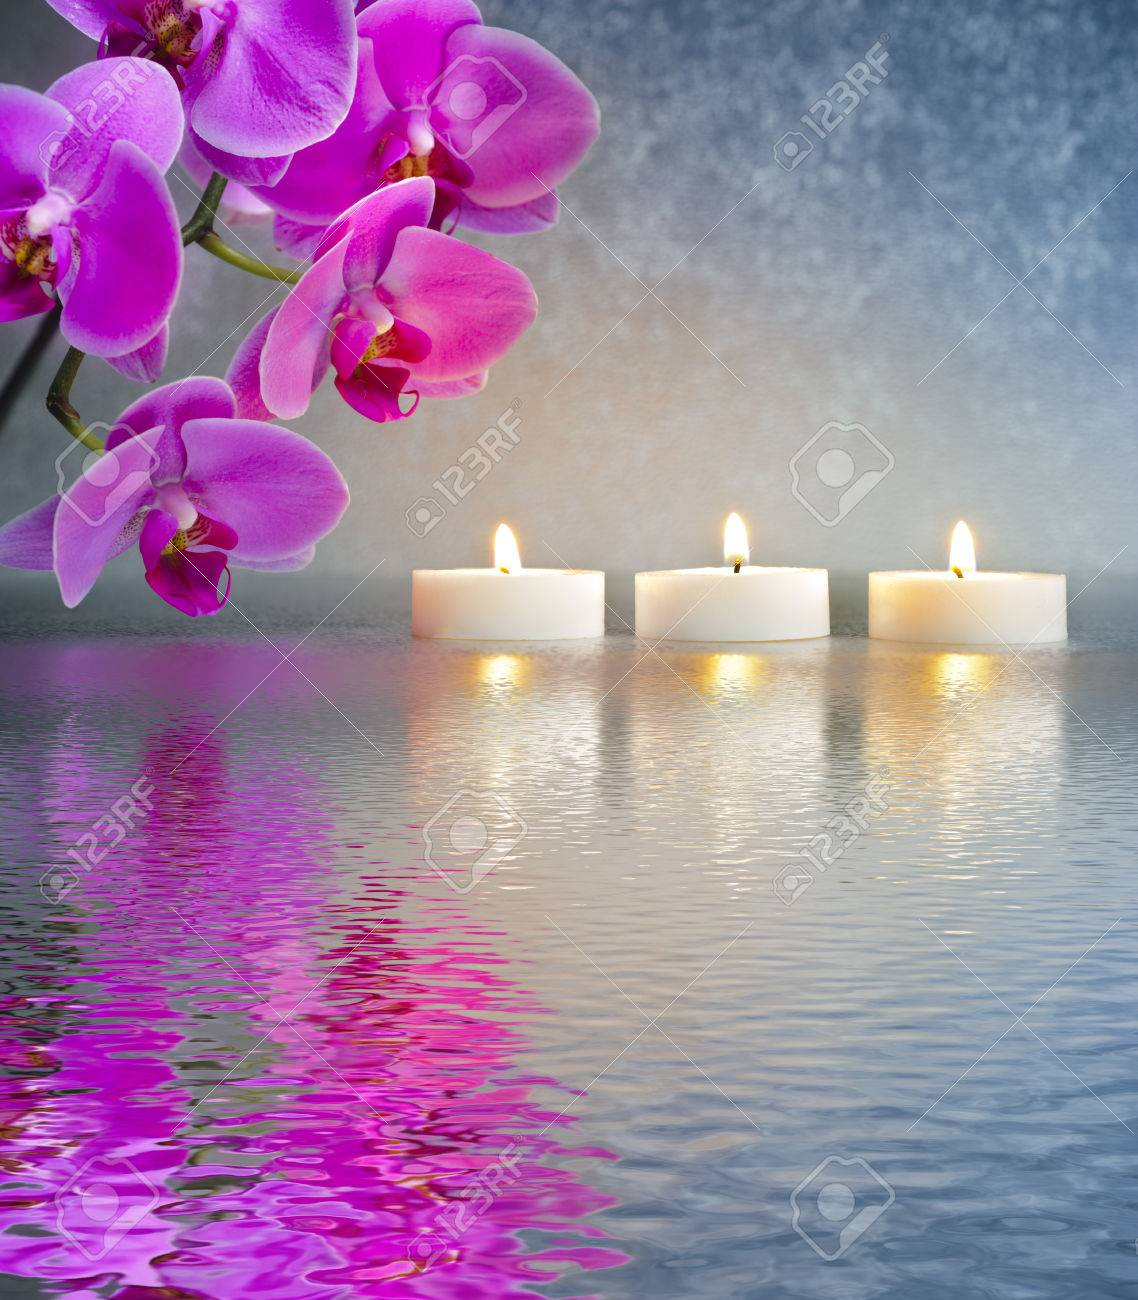 Japanese ZEN Garden With Candle Lights Mirroring In Water Stock Photo